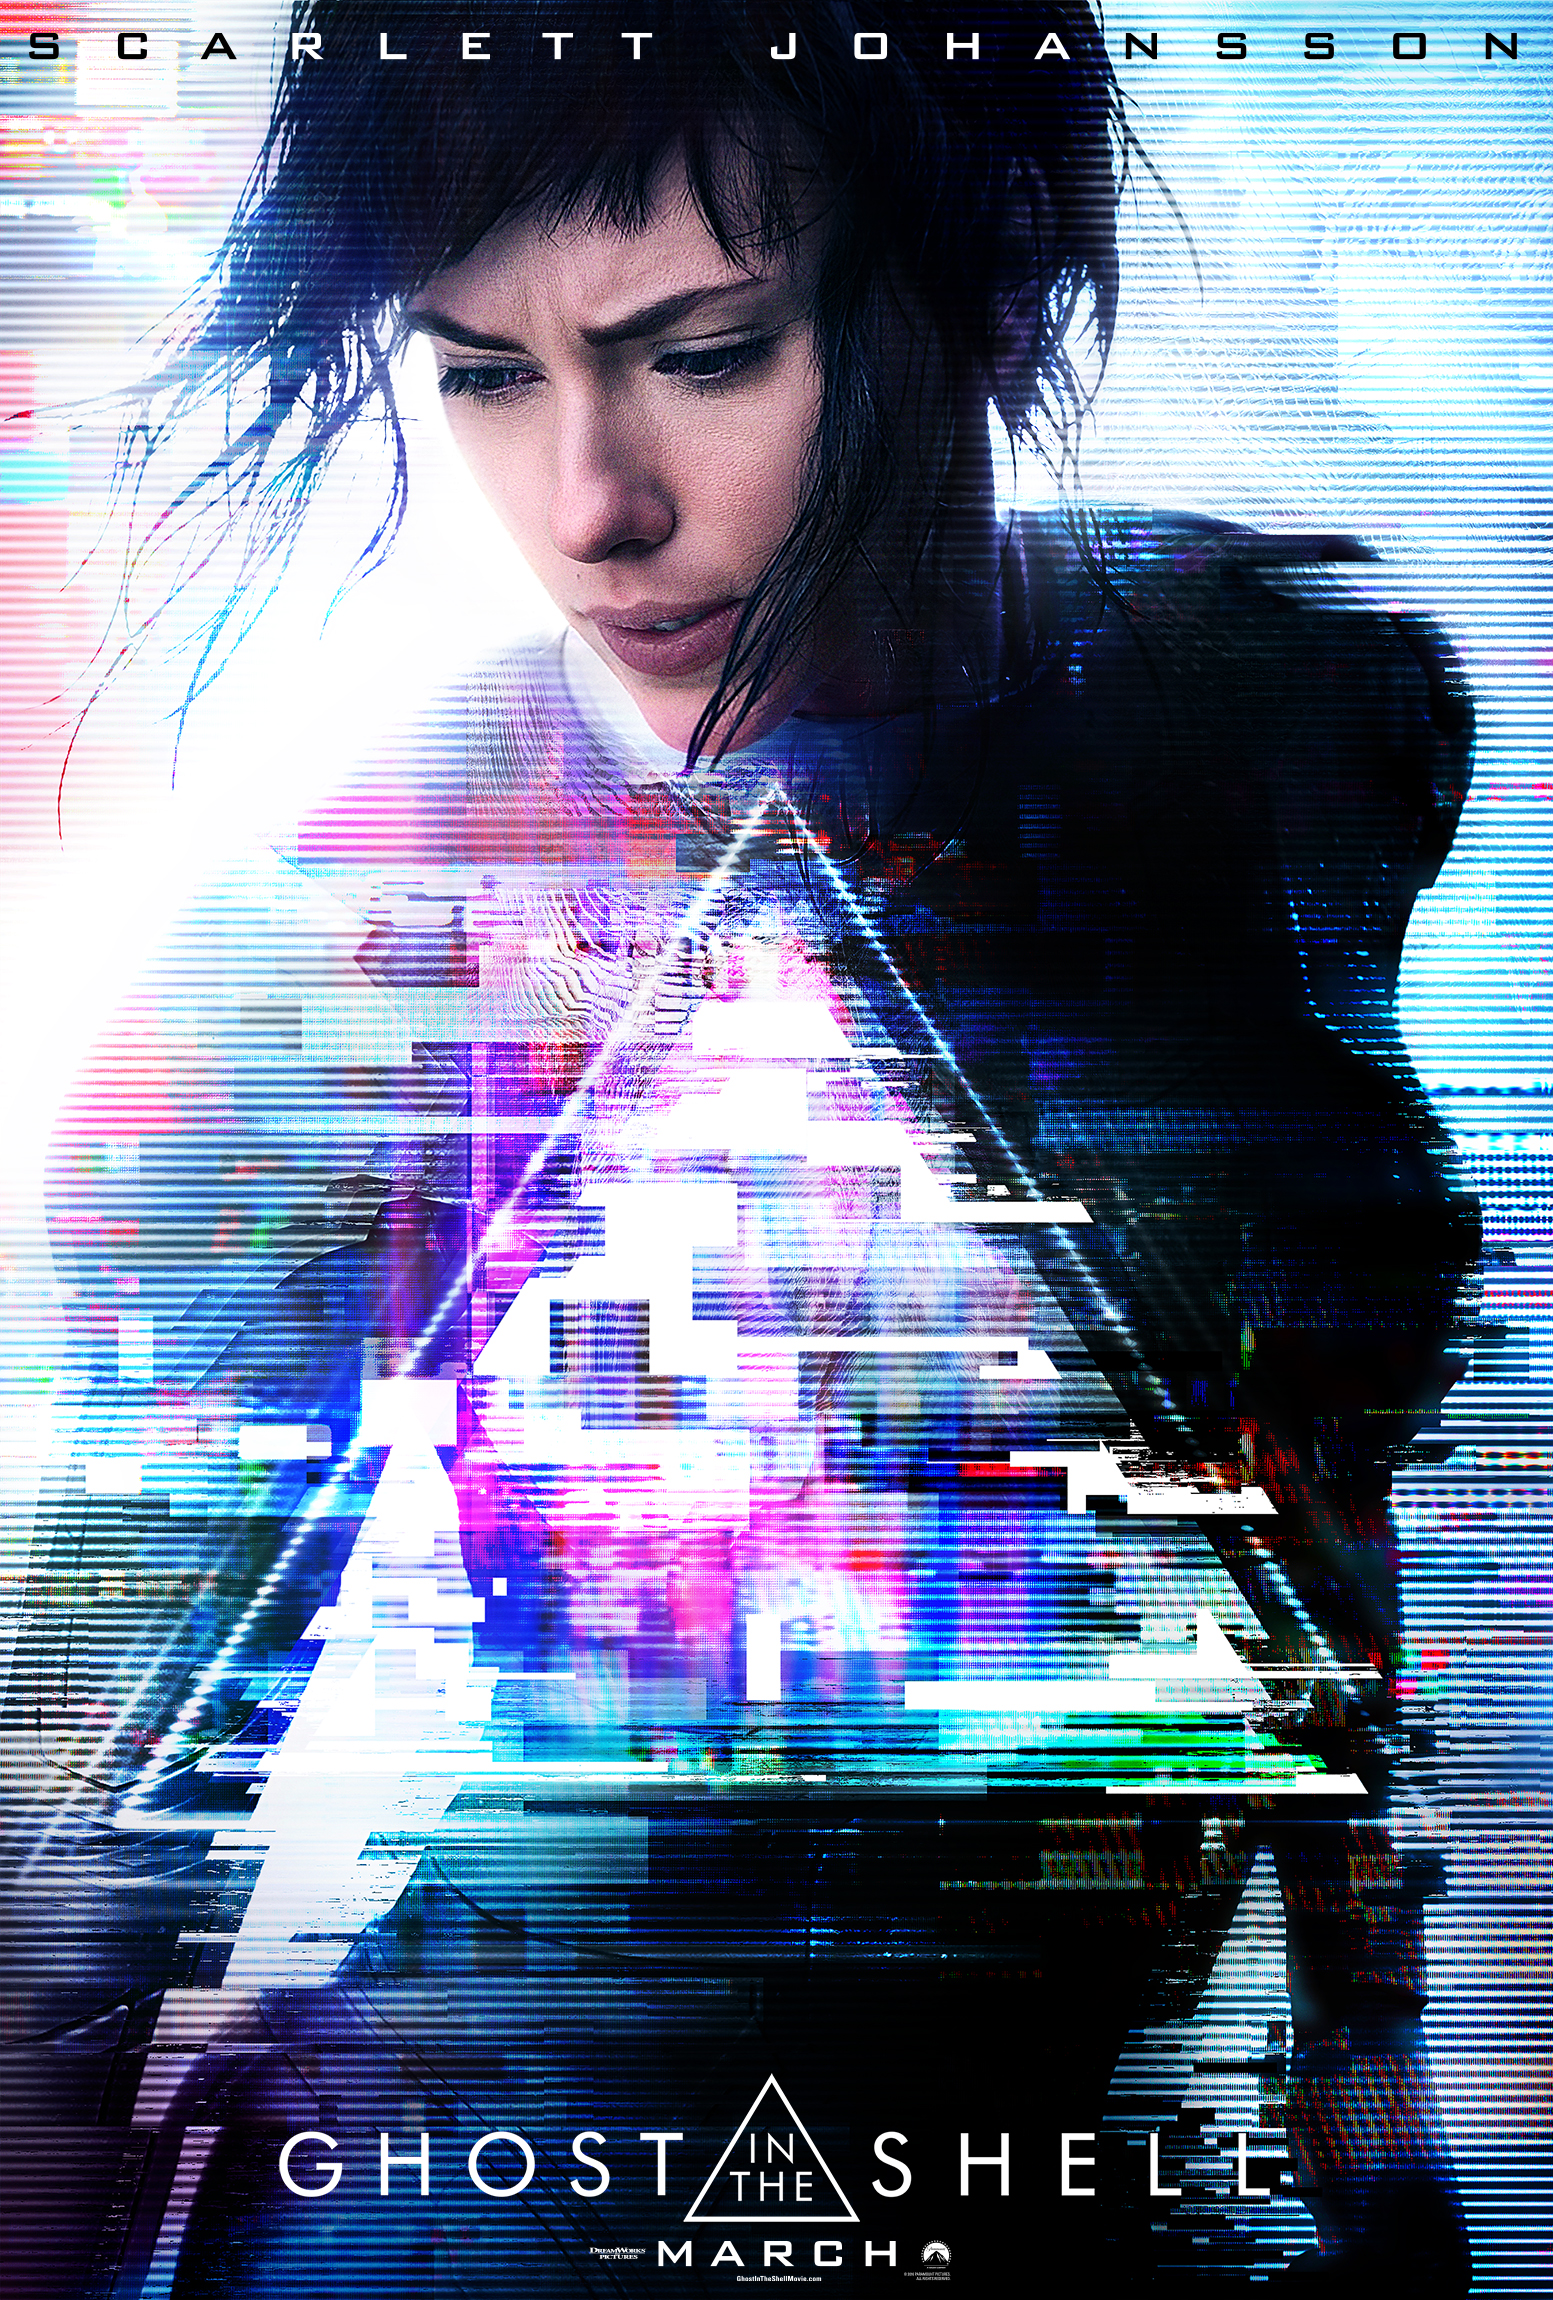 Ghost in the Shell (2017) - Directed By: Rupert SandersStarring: Scarlett Johansson, Pilou Asbæk, Takeshi KitanoRated: PG-13 for Intense Sequences of Sci-Fi Violence, Suggestive Content, and Some Disturbing ImagesRun Time: 1h 47mTMM Score: 2 StarsStrengths: Action Sequences, Some Production Design ElementsWeakness: Story, Acting, Characterizations